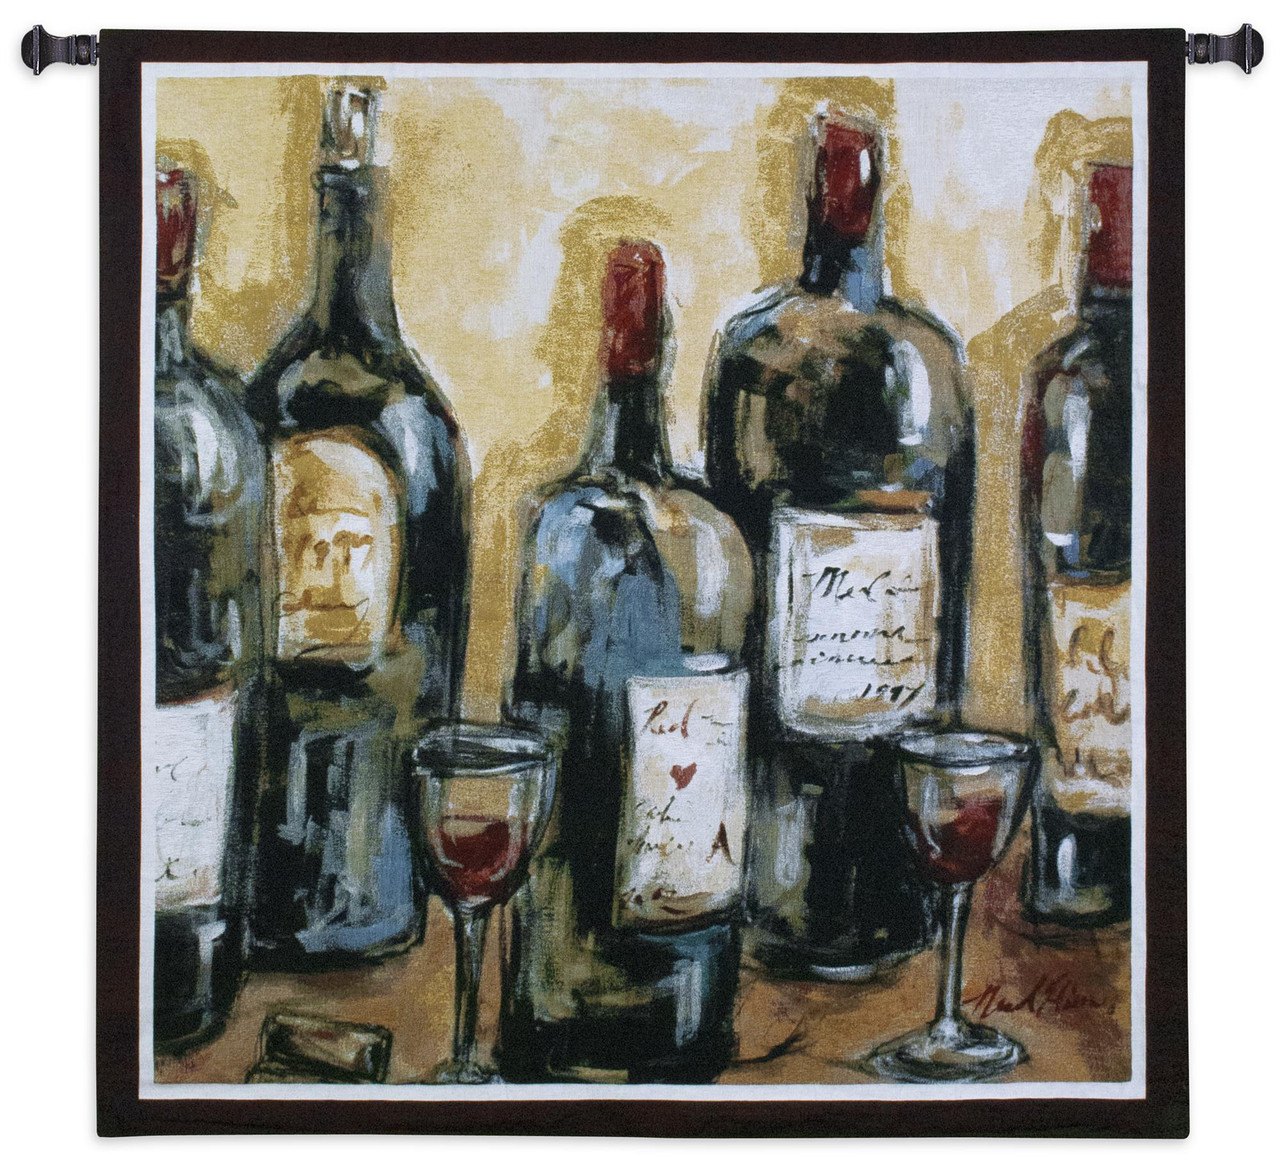 Wine Bar Woven Tapestry Wall Art Hanging Impressionist Wine Bottles Still Life 100 Cotton Usa Size 53x53